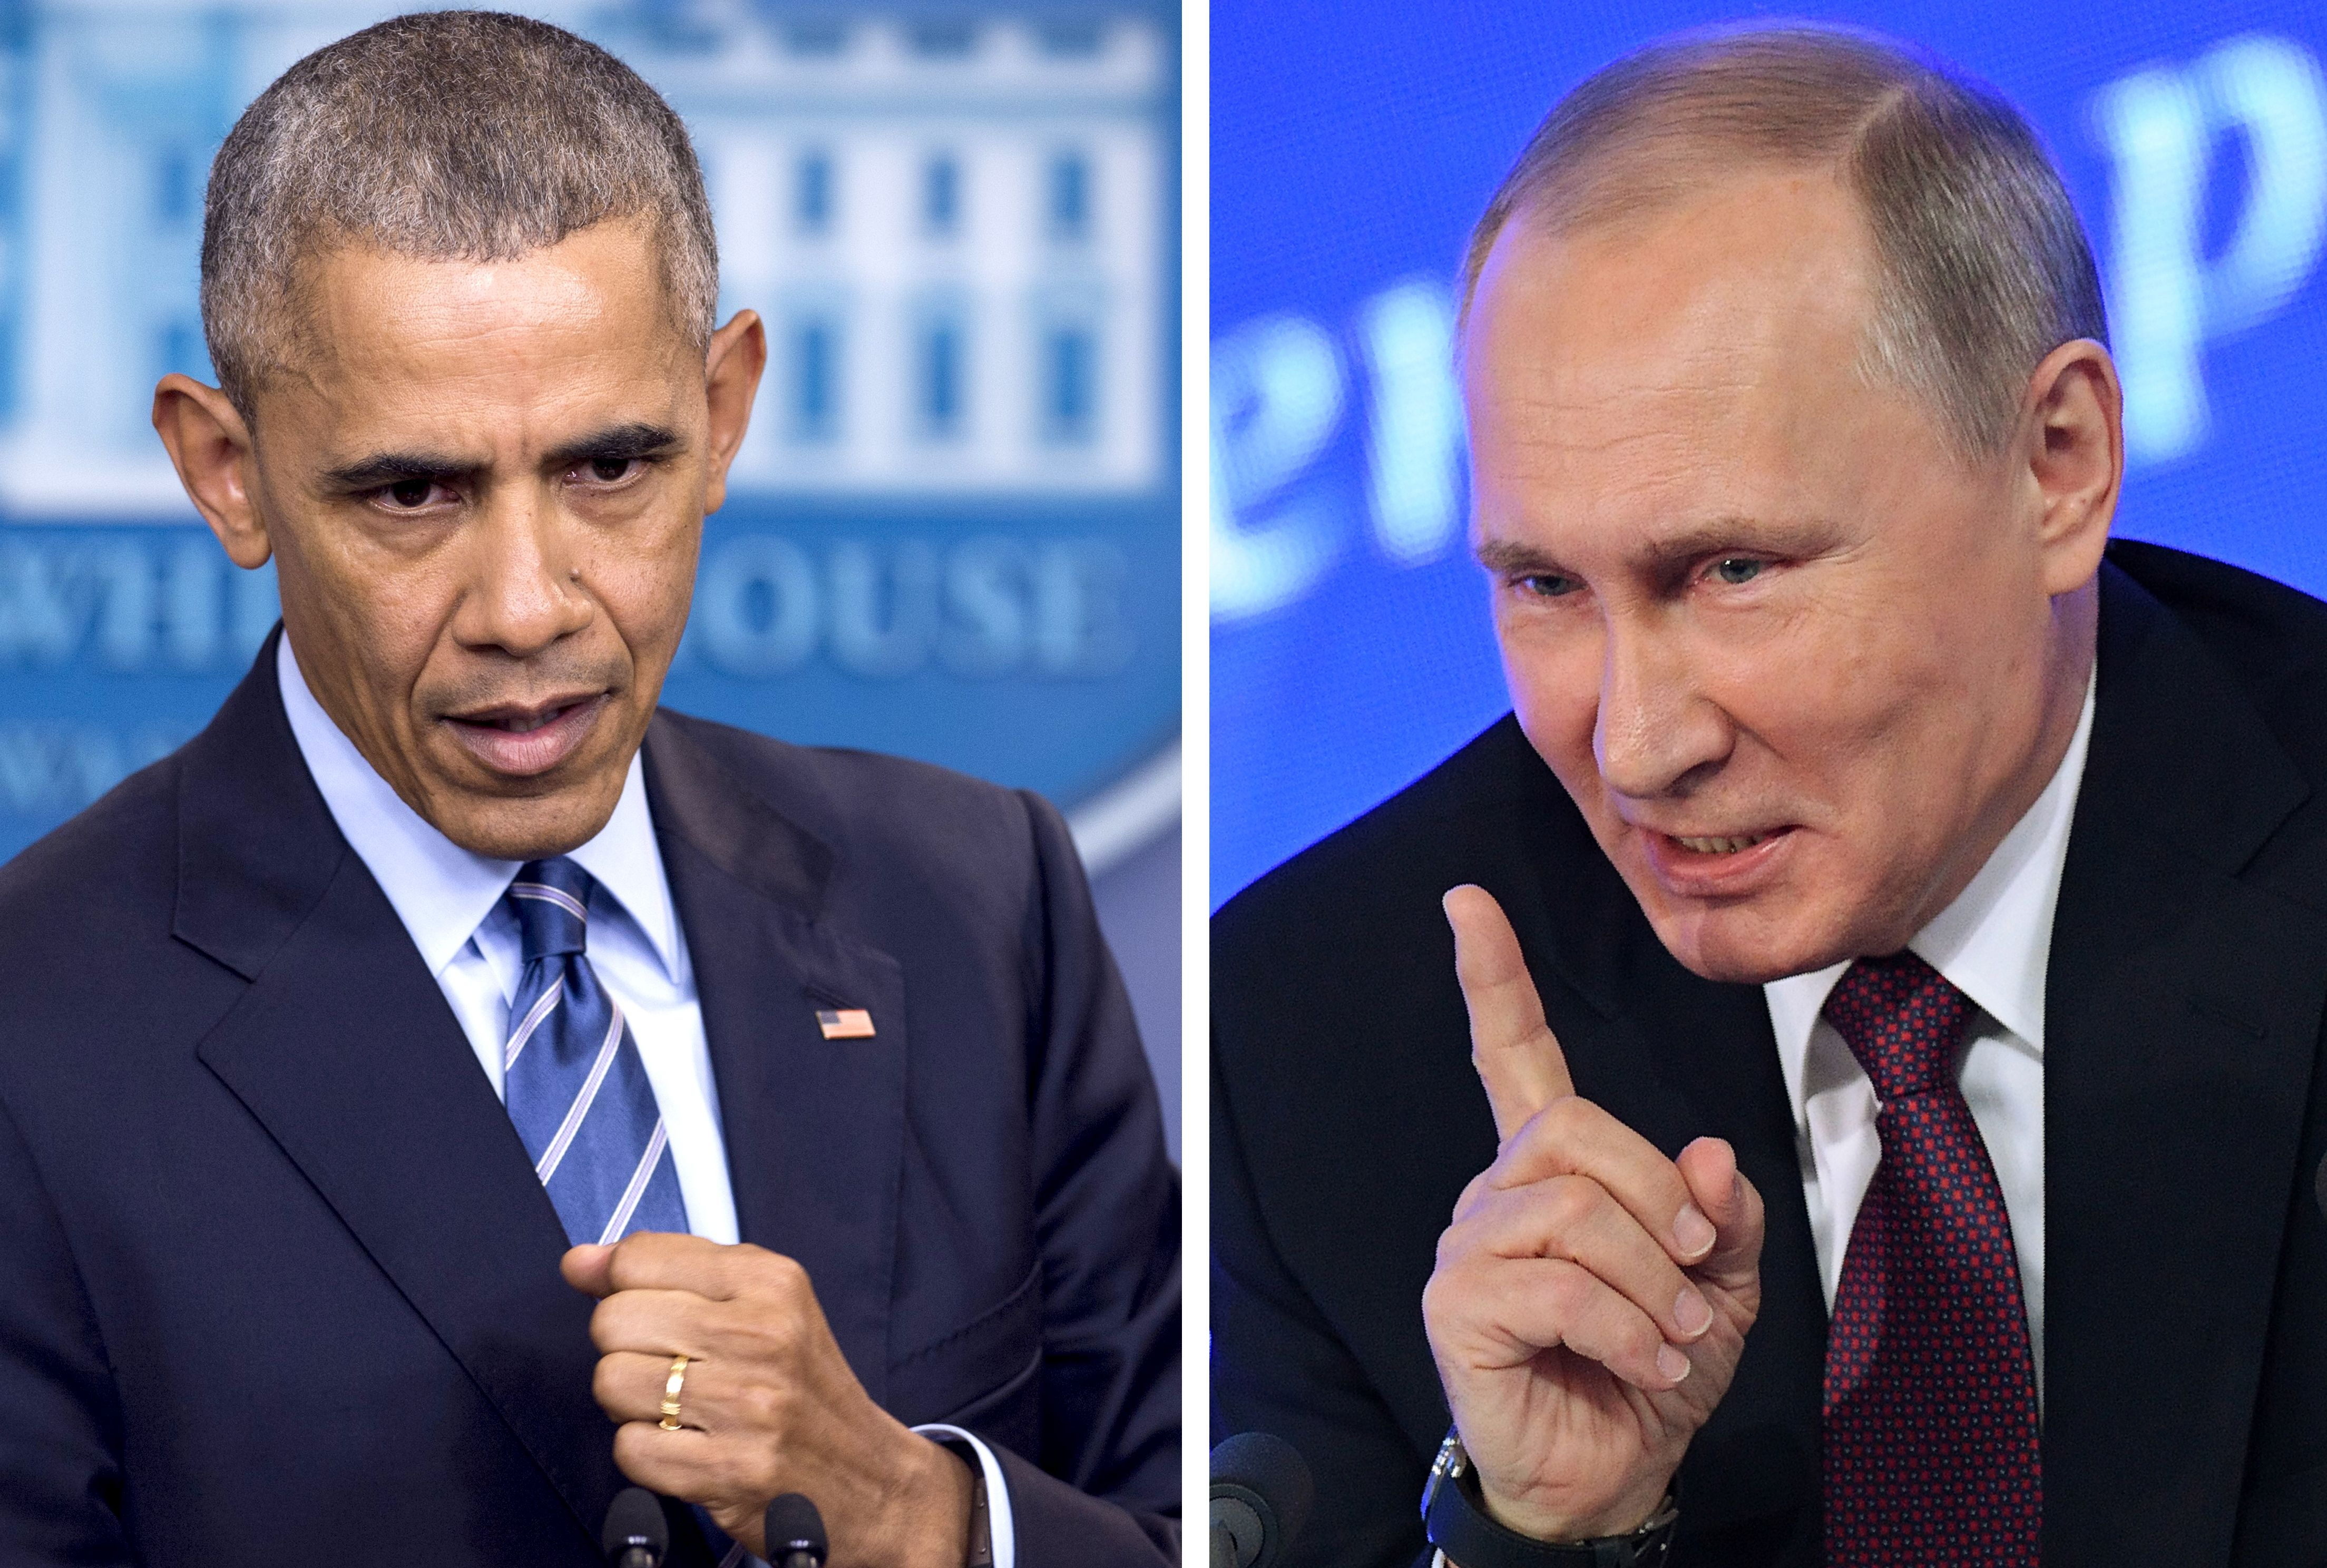 The U.S, on Dec. 29, 2016, fired back at Moscow over its meddling in the presidential election, announcing a series of tough sanctions against intelligence agencies.